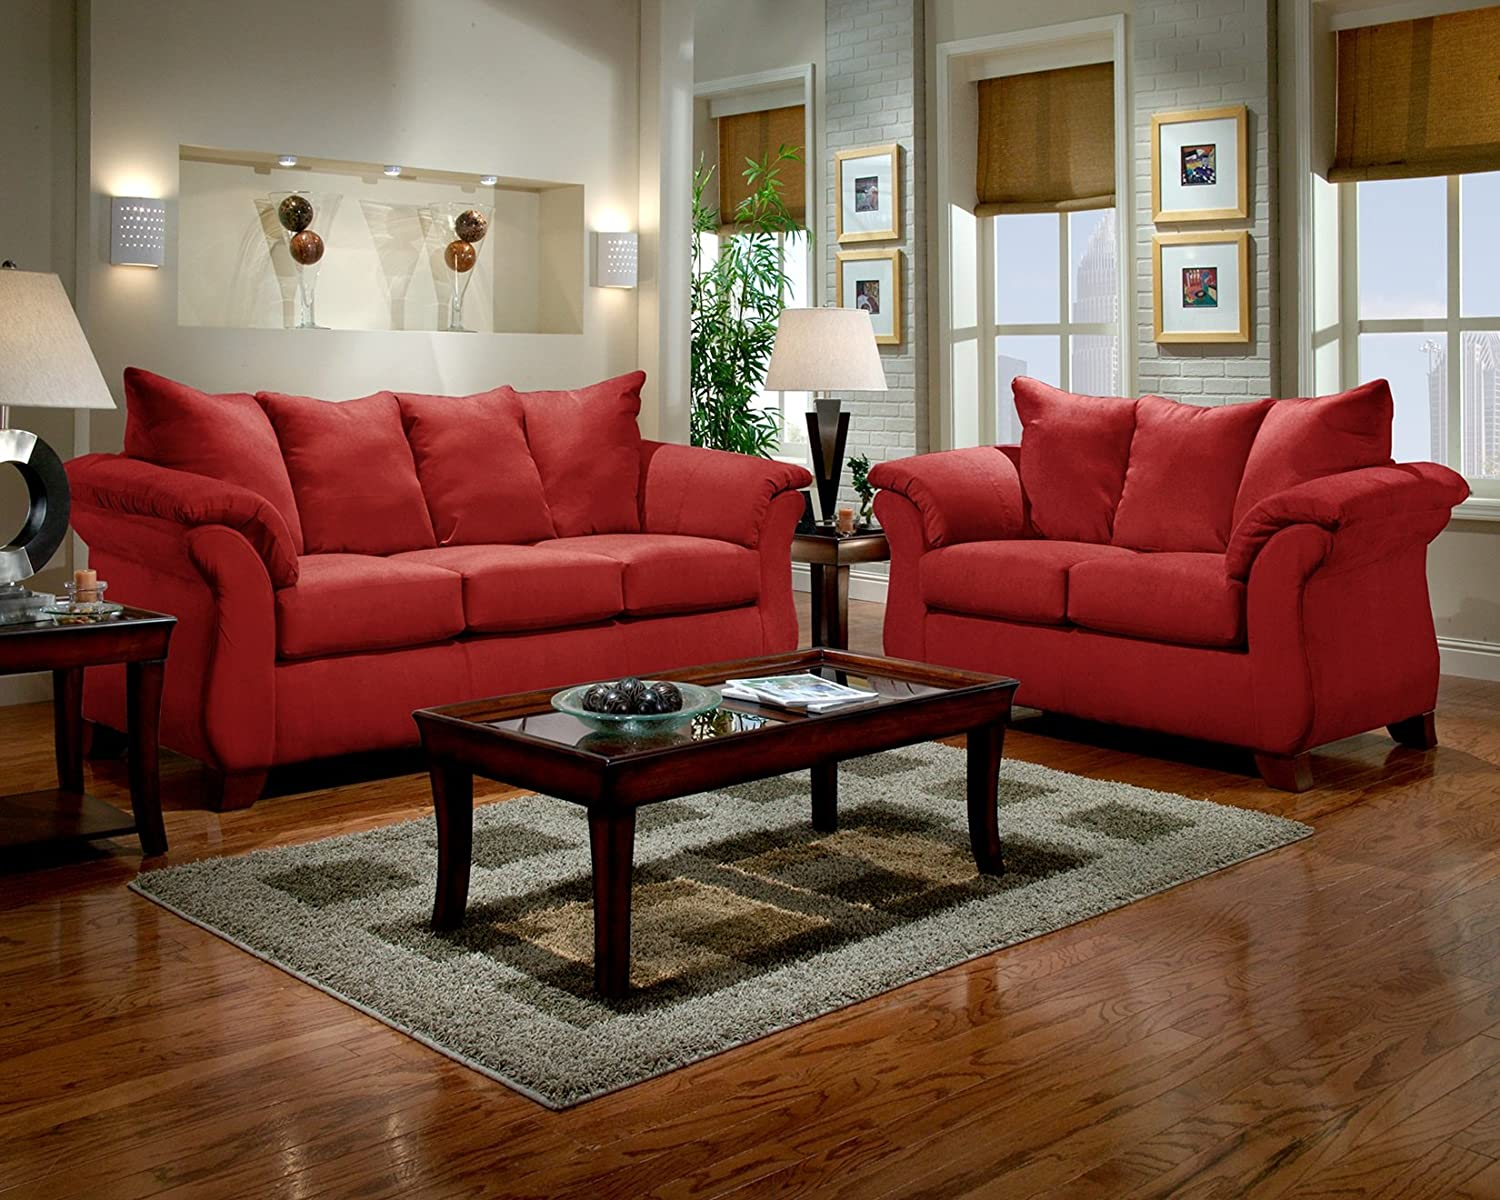 rectangle fabric loveseats big leather stylish livingroom loveseat grey living in sets oversized ottoman with furniture chairs red room